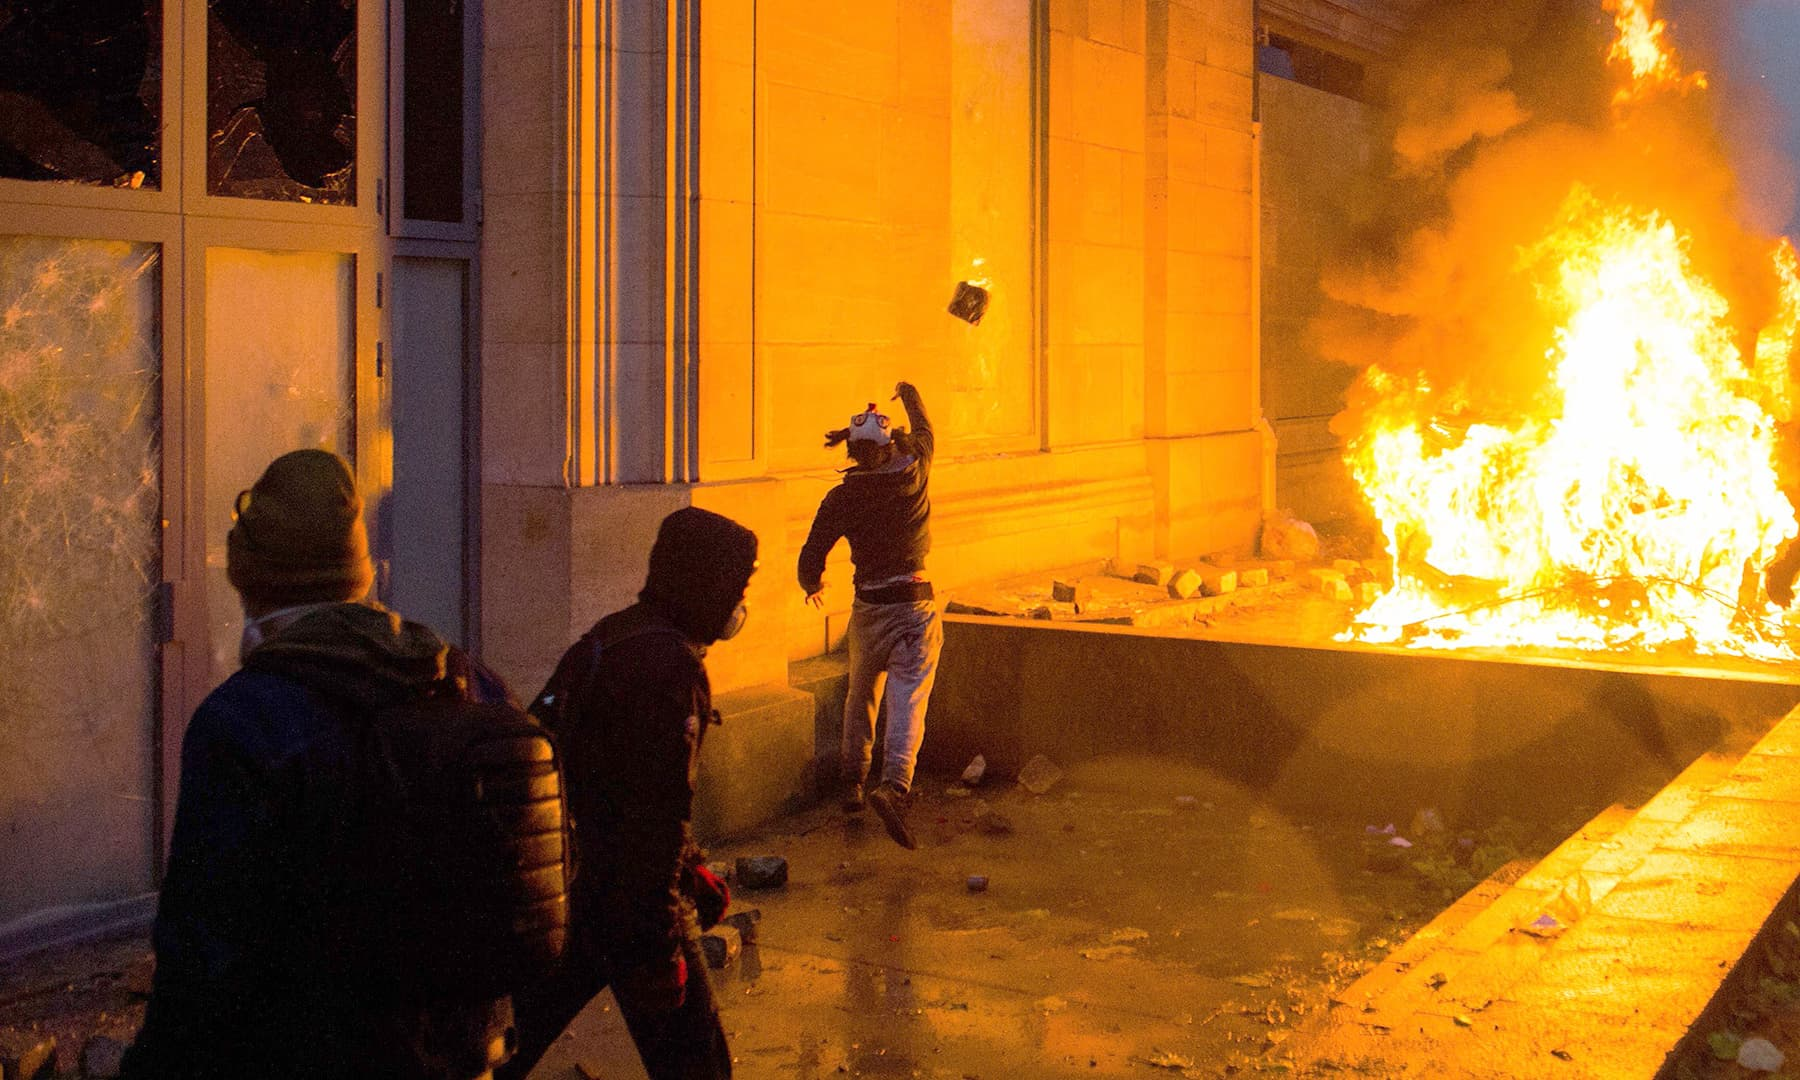 A man throws a stone next to the broken windows of the Musee de l'Orangerie and a burning vehicle on the Tuileries Garden. —AFP